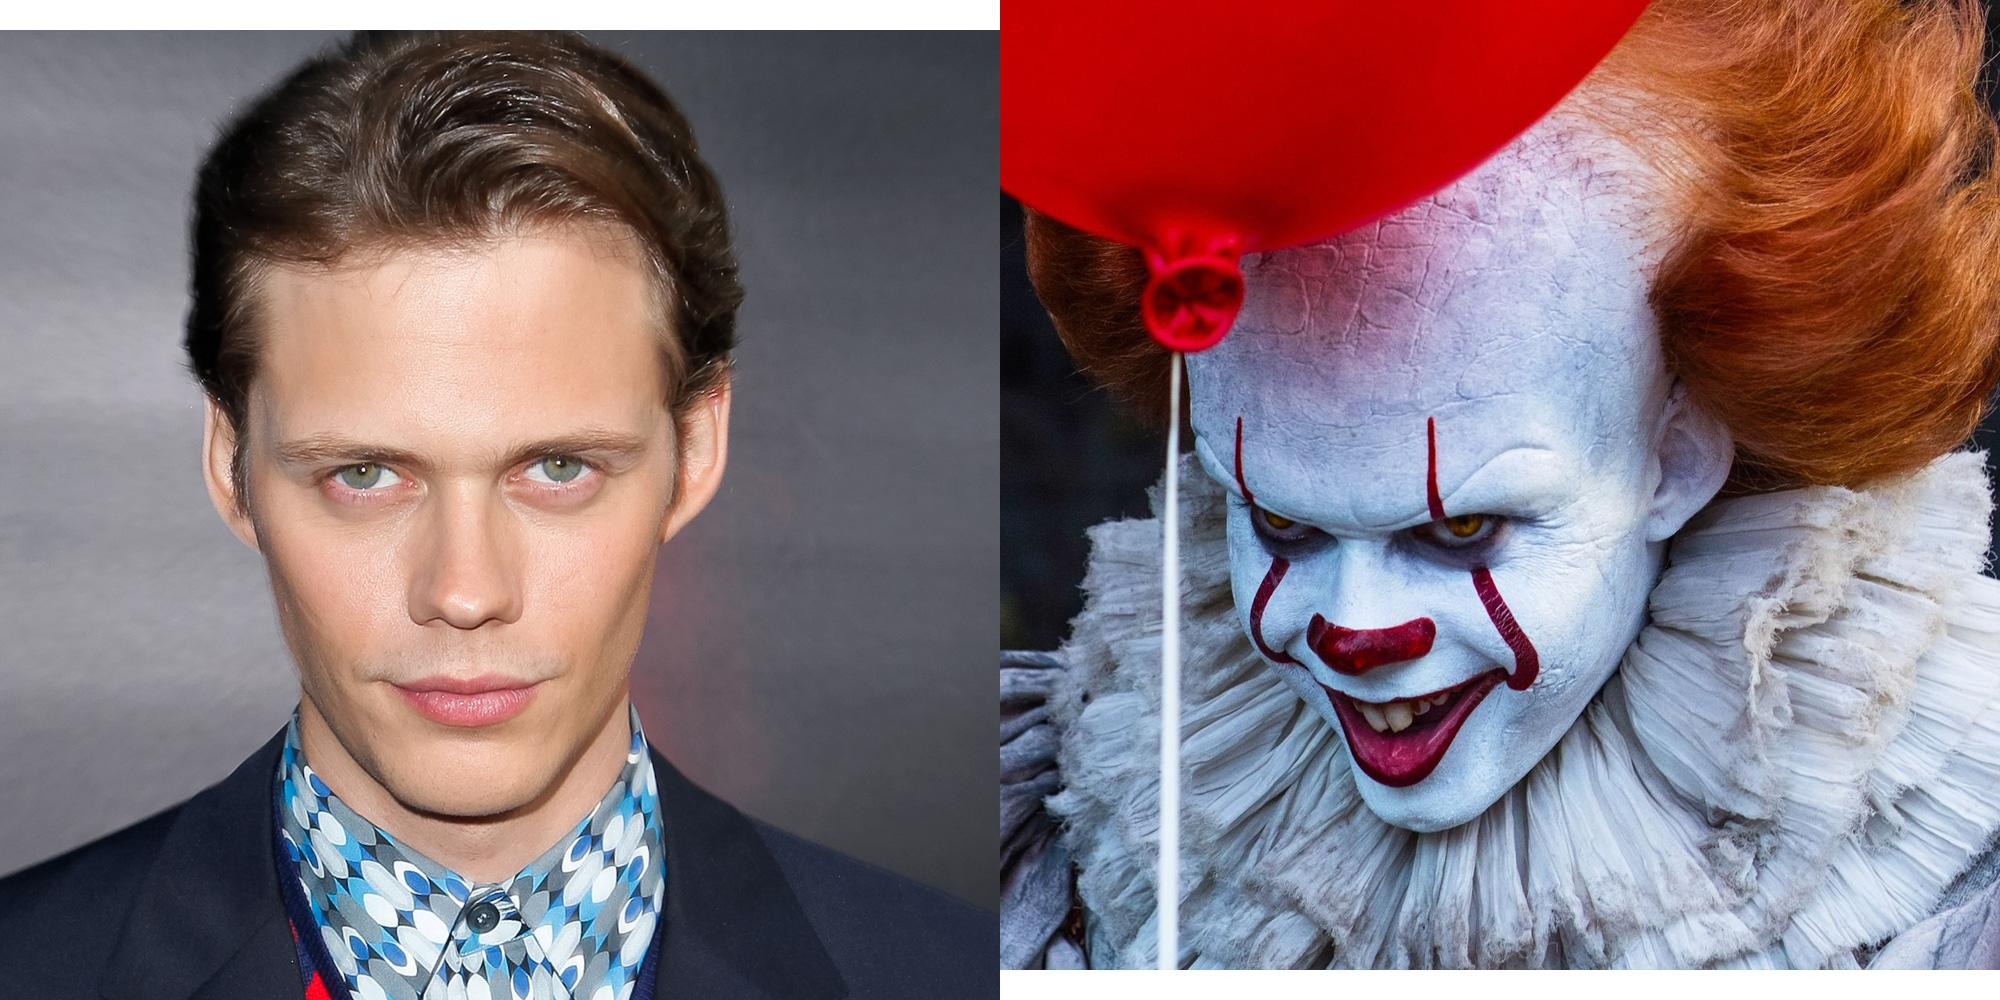 U Uu 2017 >> Who Is the Guy Who Plays Pennywise in It?